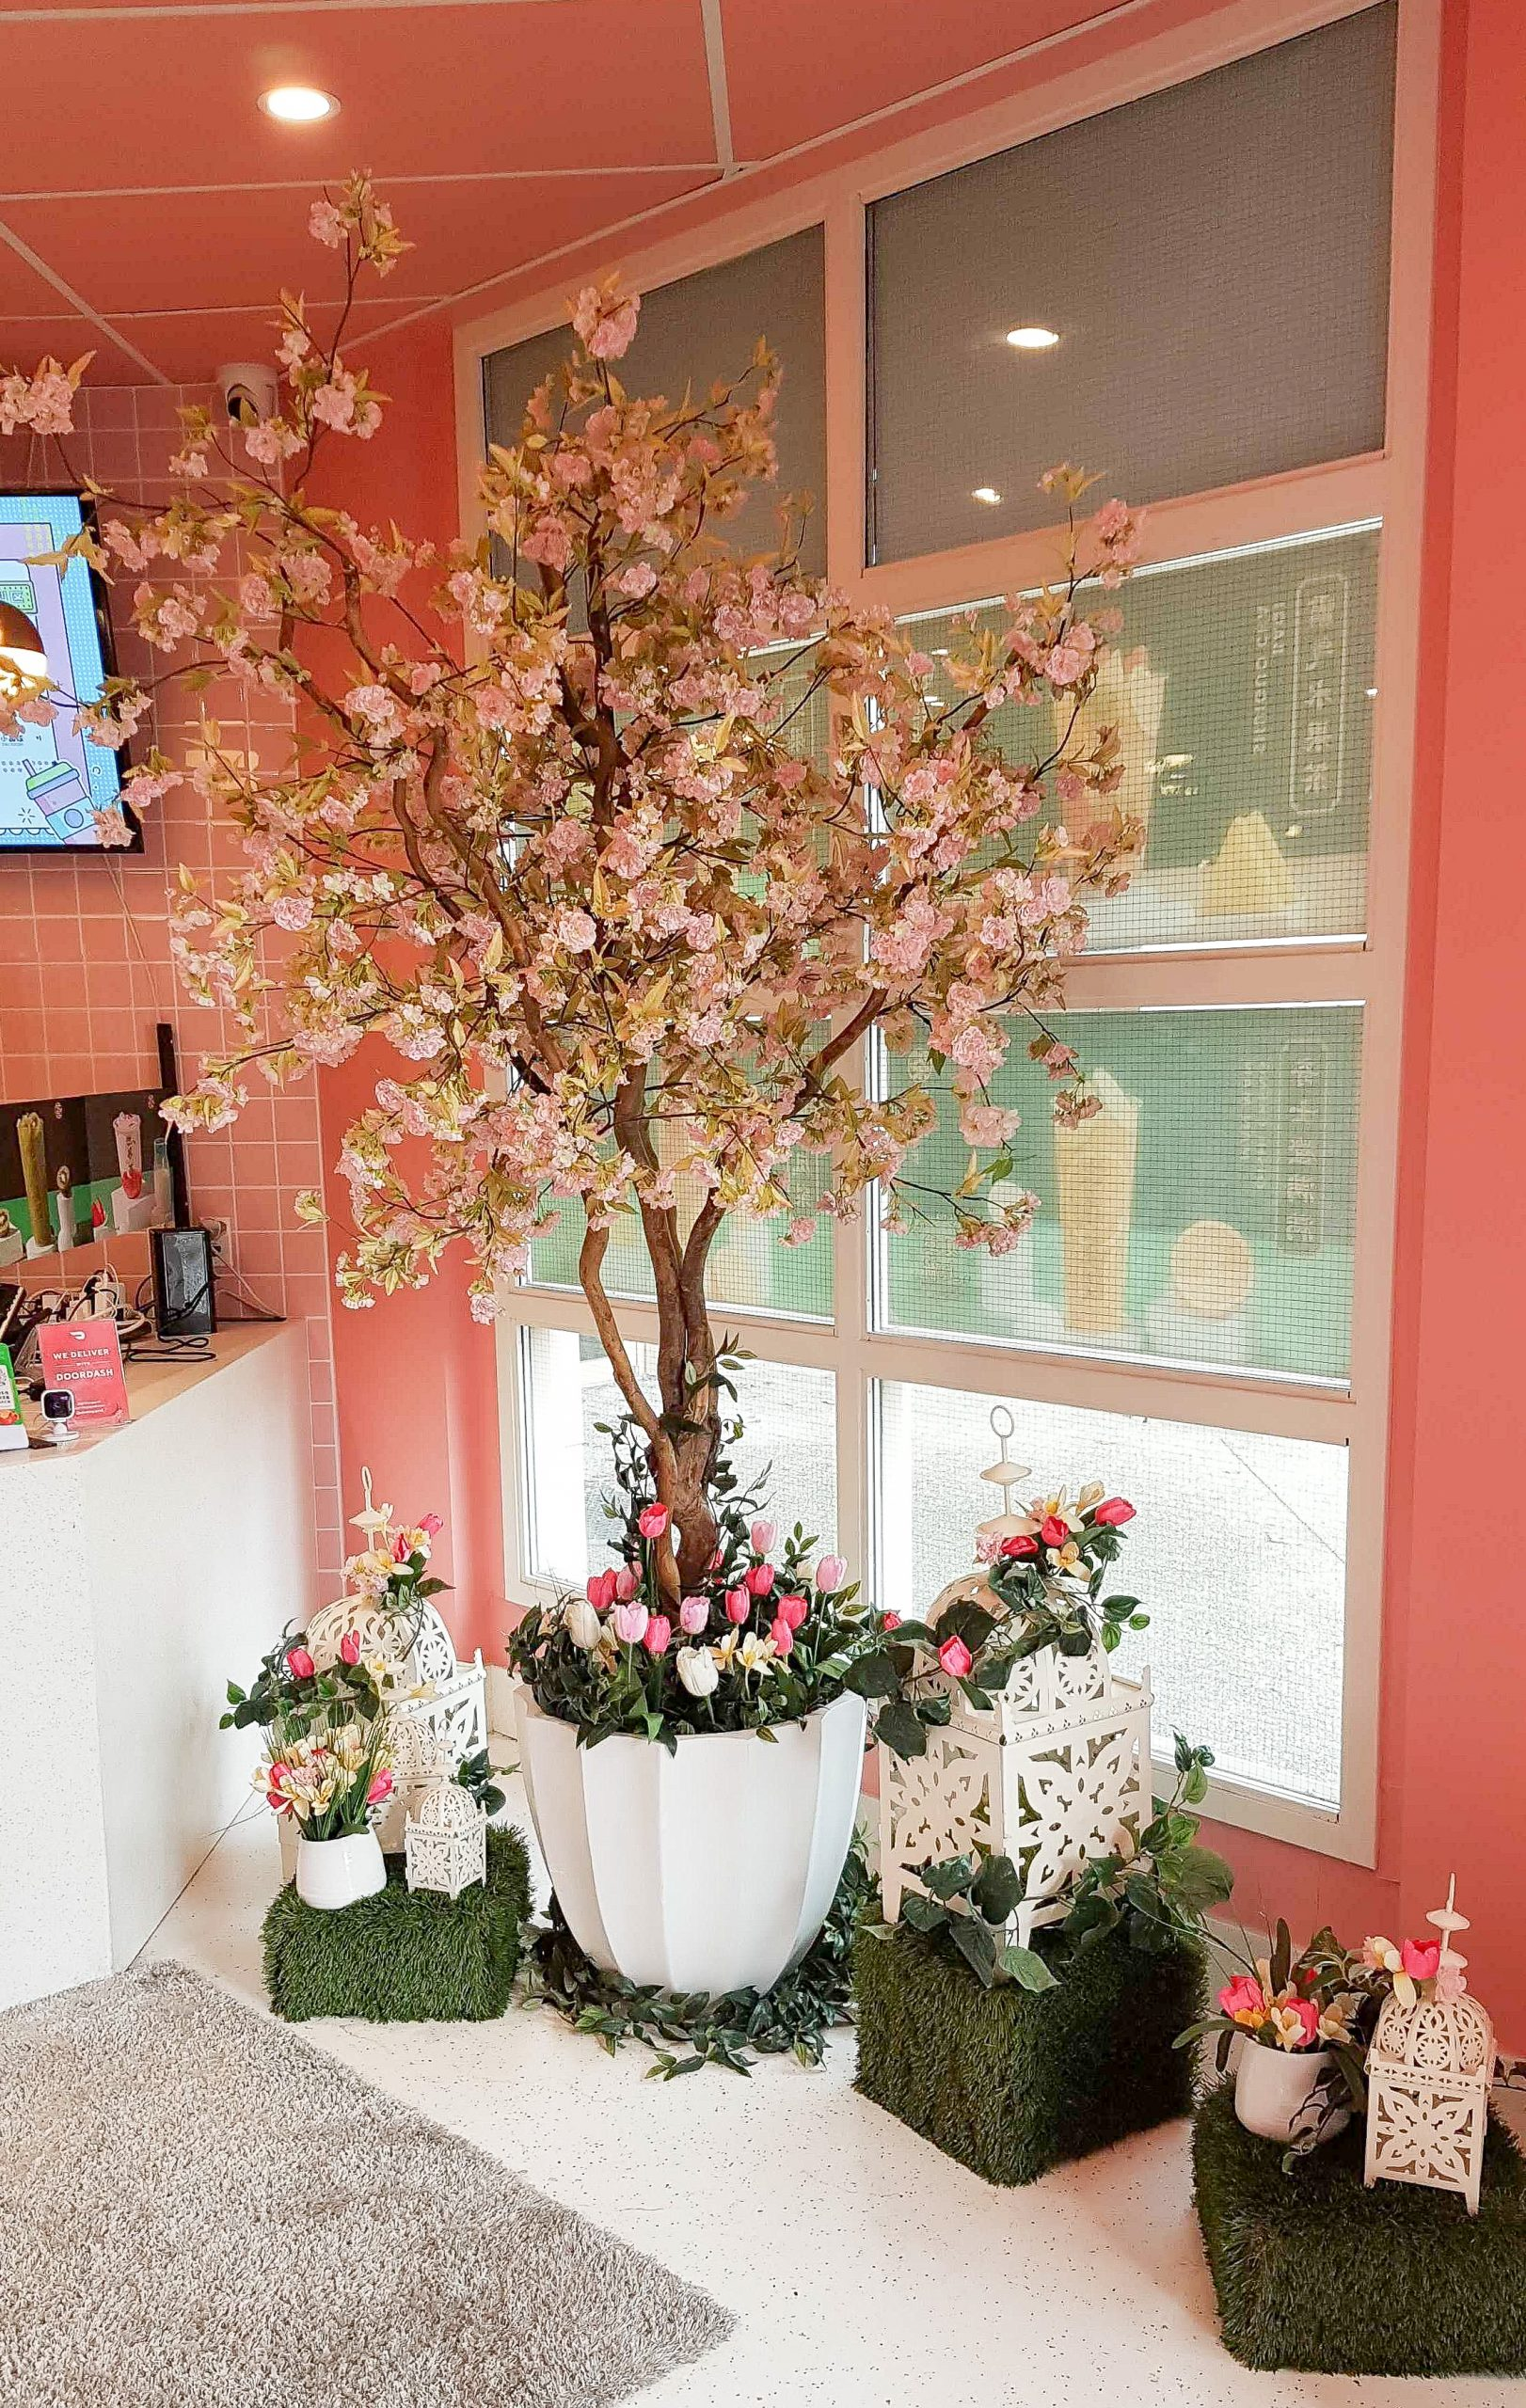 Cherry blossom in white planter with tulips ground cover. Vignette includes grass cubes with lanterns and tulip decor